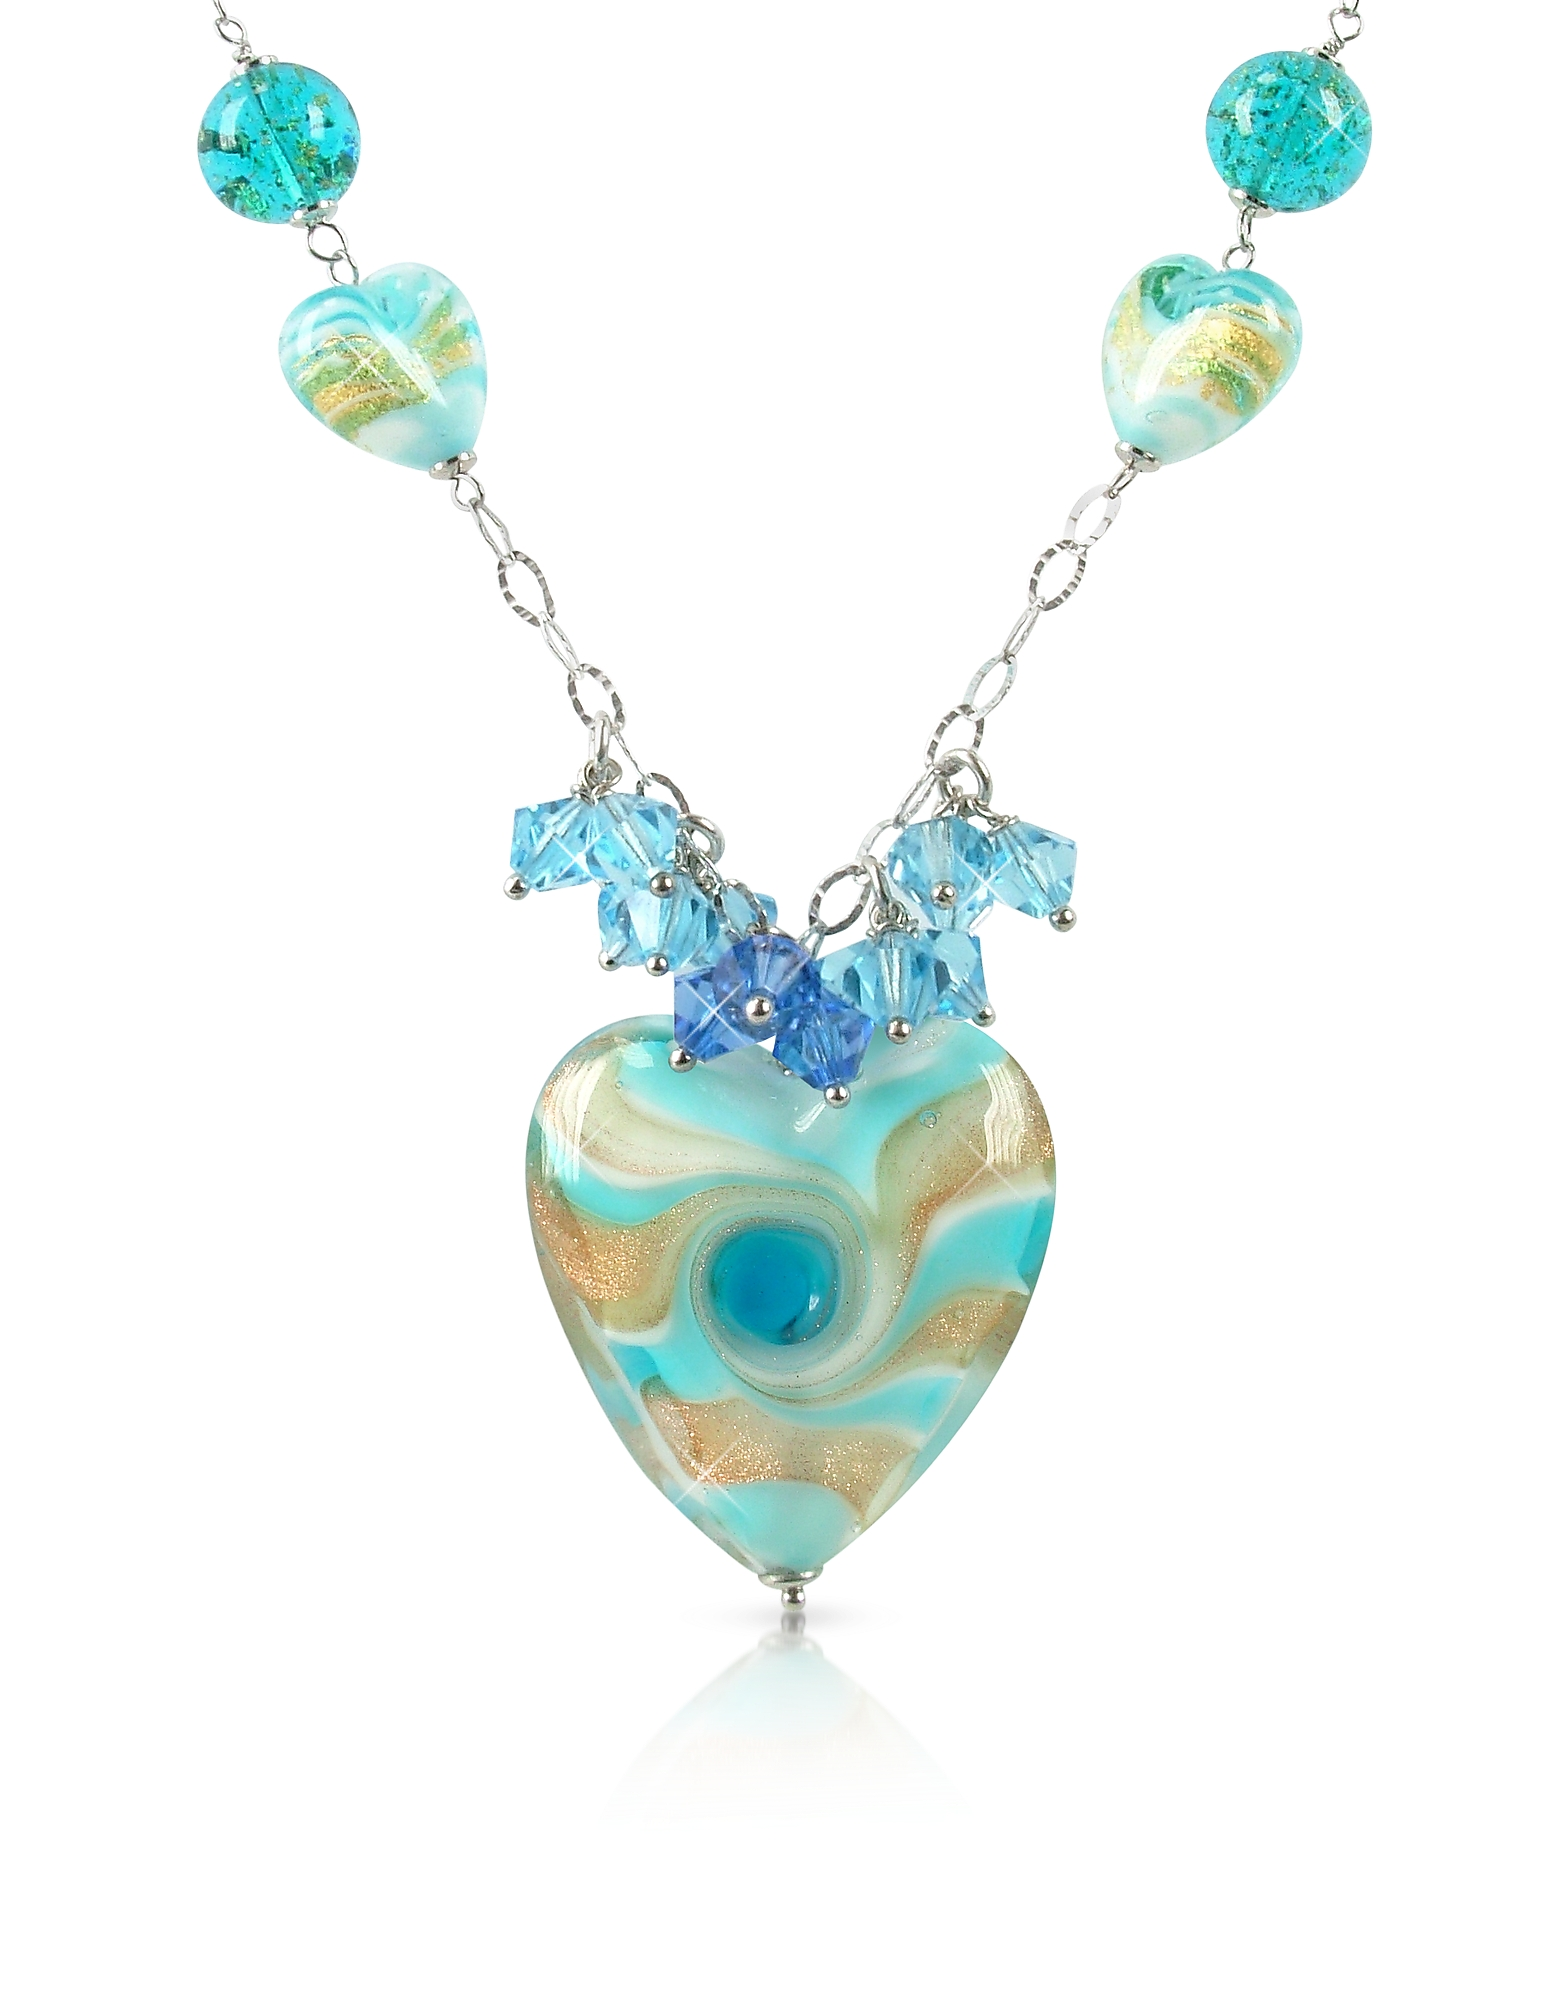 House of Murano Vortice - ����� �� ������� 925 ����� � ��������� ��������� ������� �� ������ ������